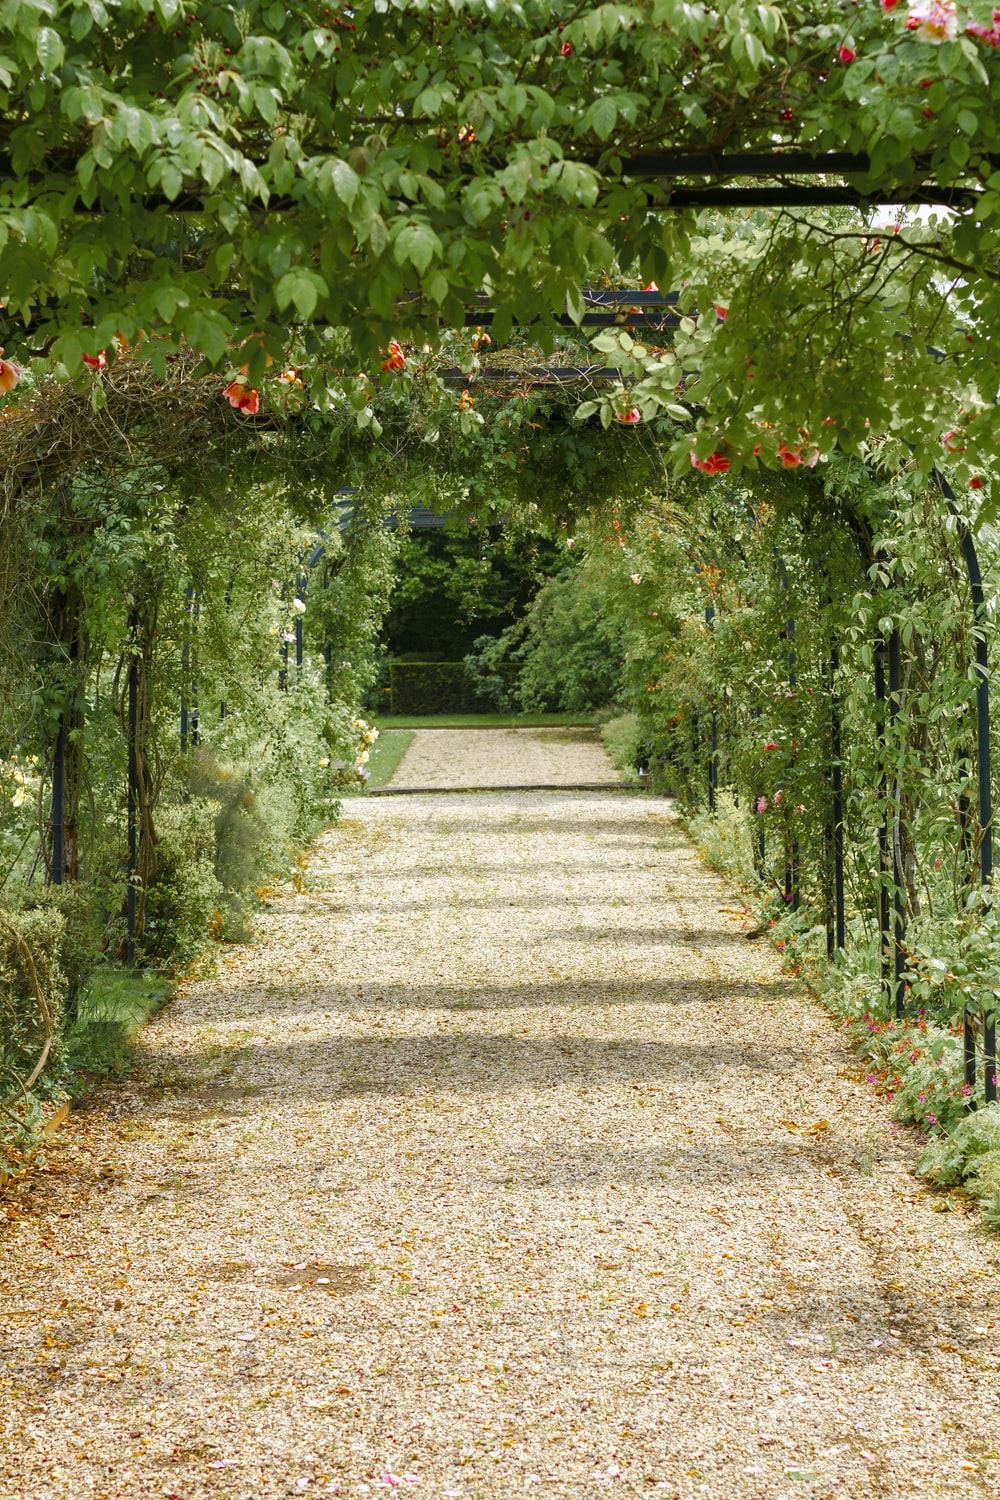 concrete pathway in flower garden with no people